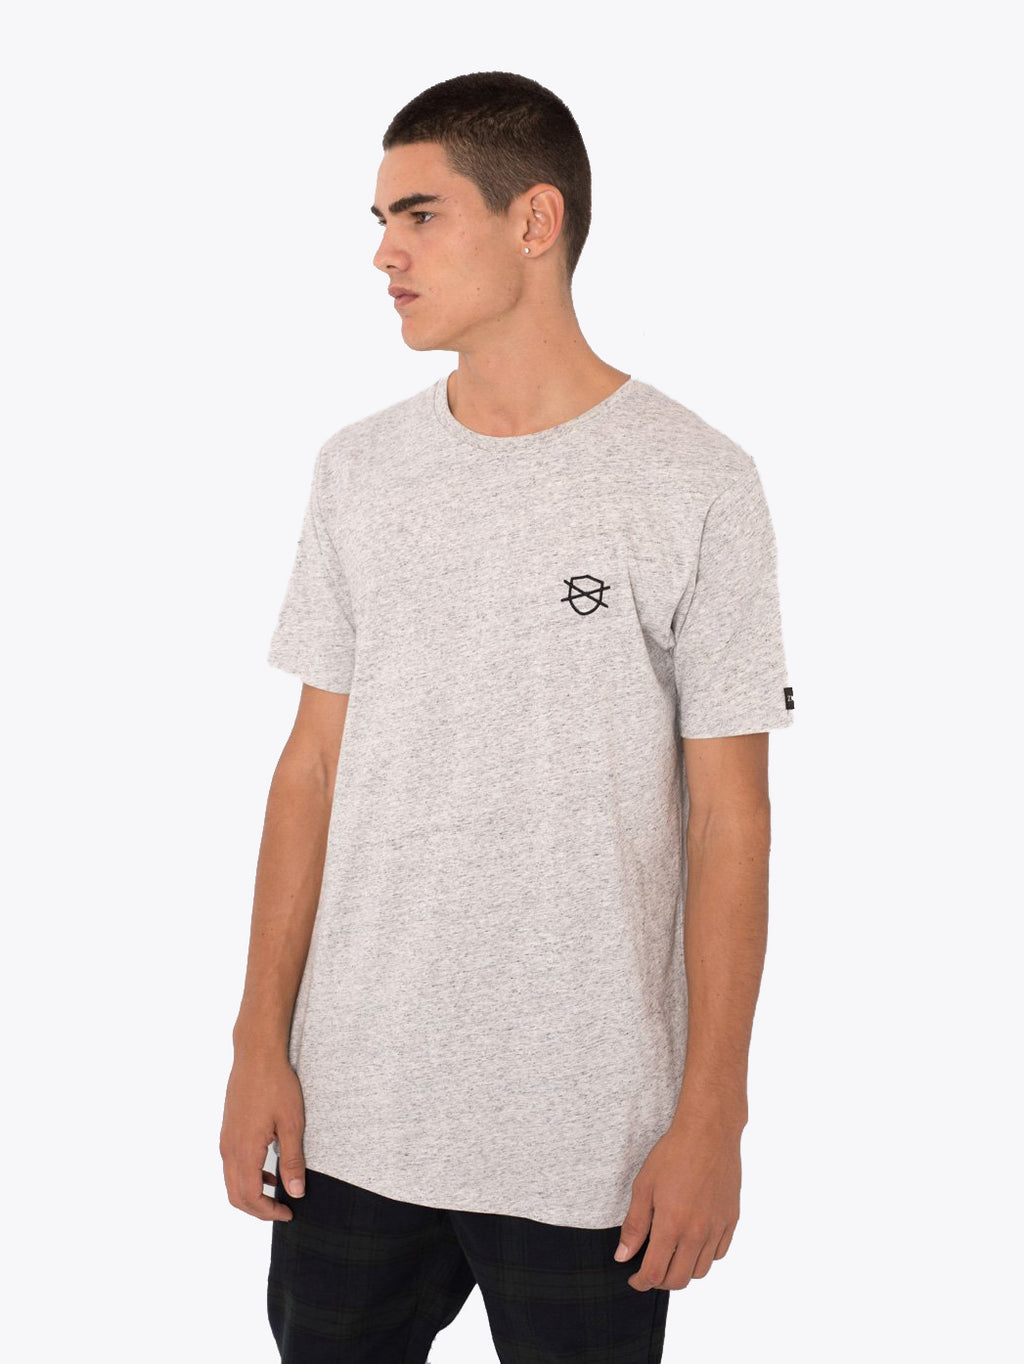 Shield Flintlock Tee